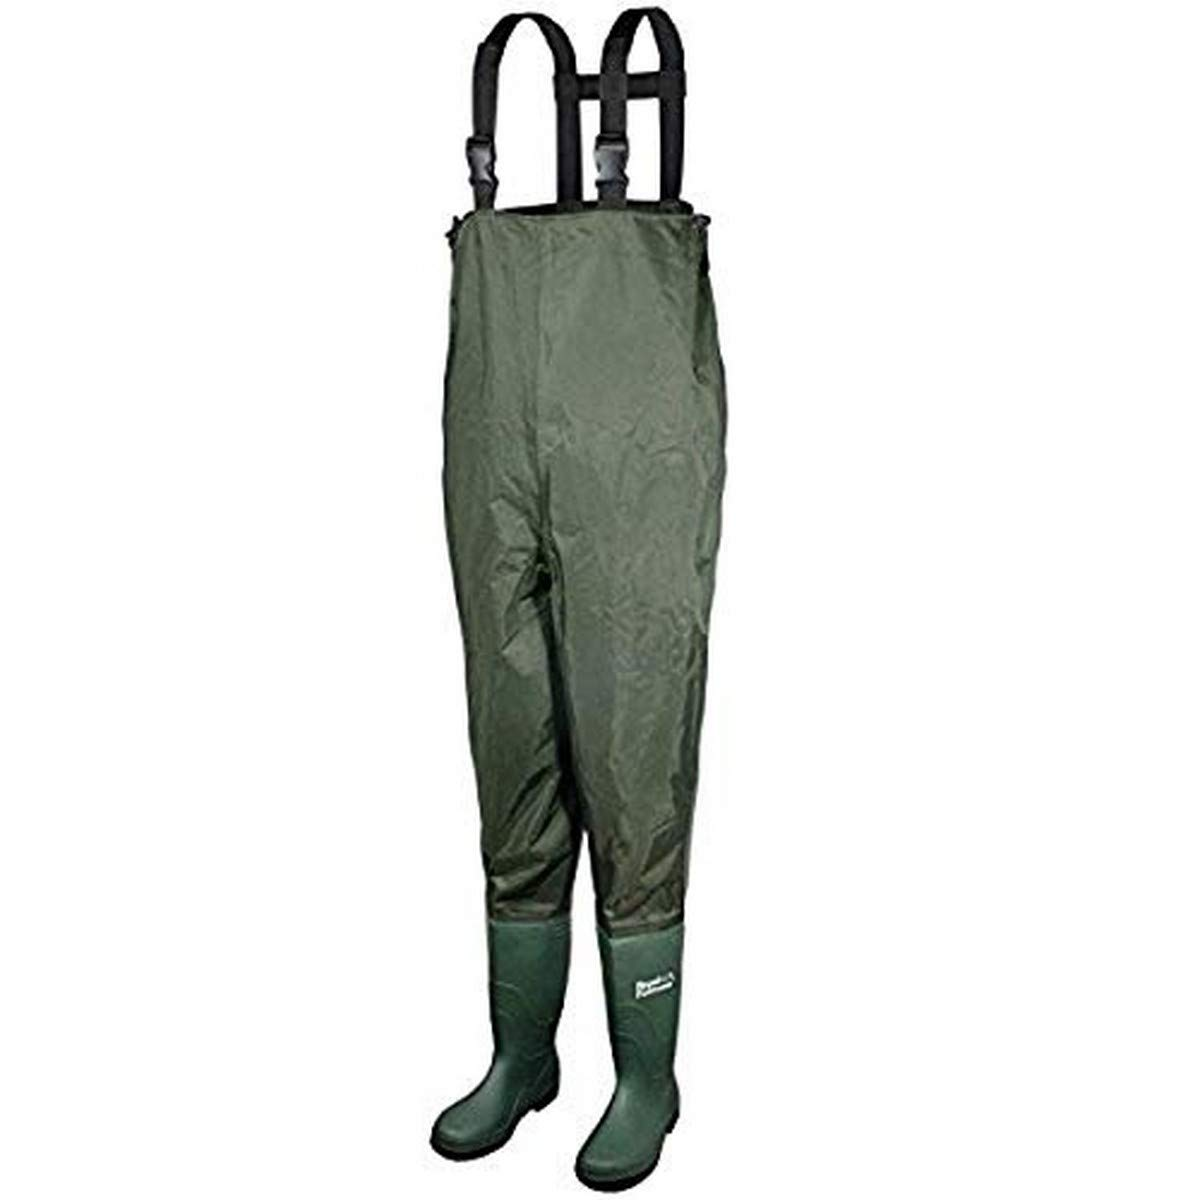 Galeton 13114-13-GR Repel Footwear Chest Boots Men's Omaha New mail order Mall Size Wader